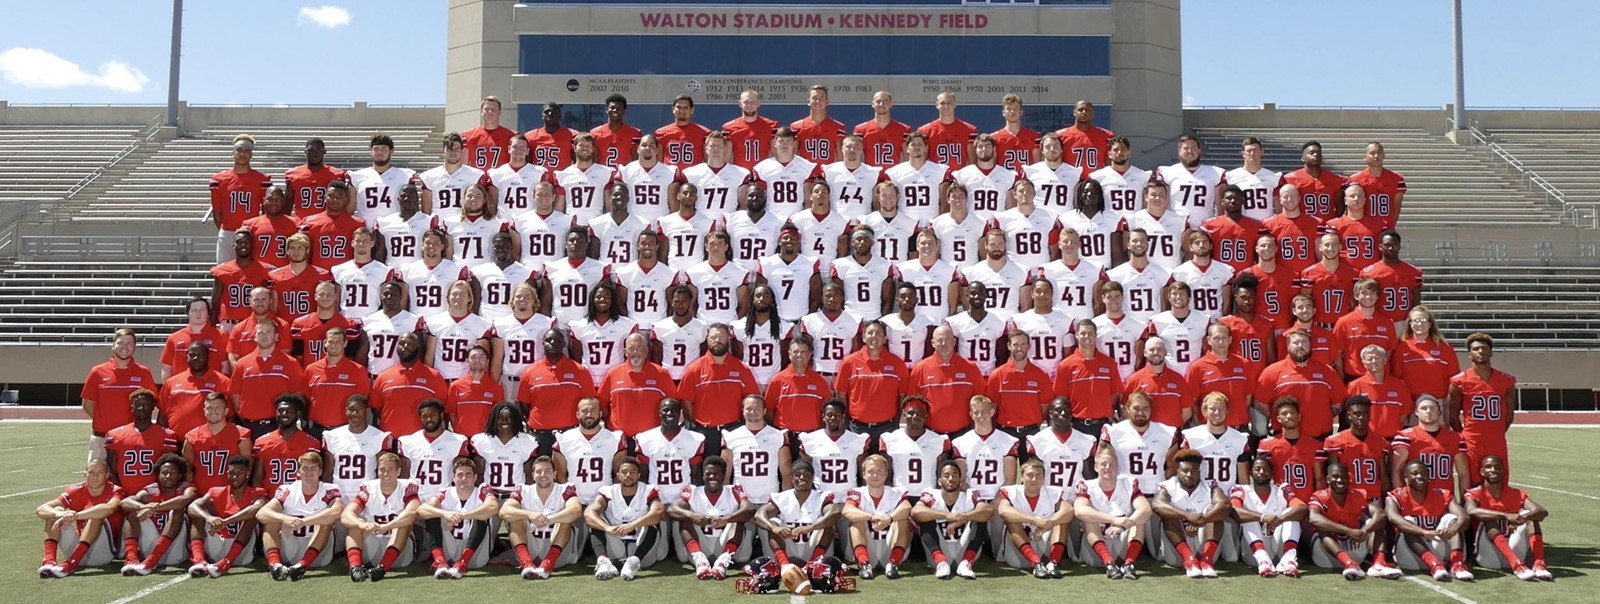 2016 0 Roster University Of Central Missouri Athletics